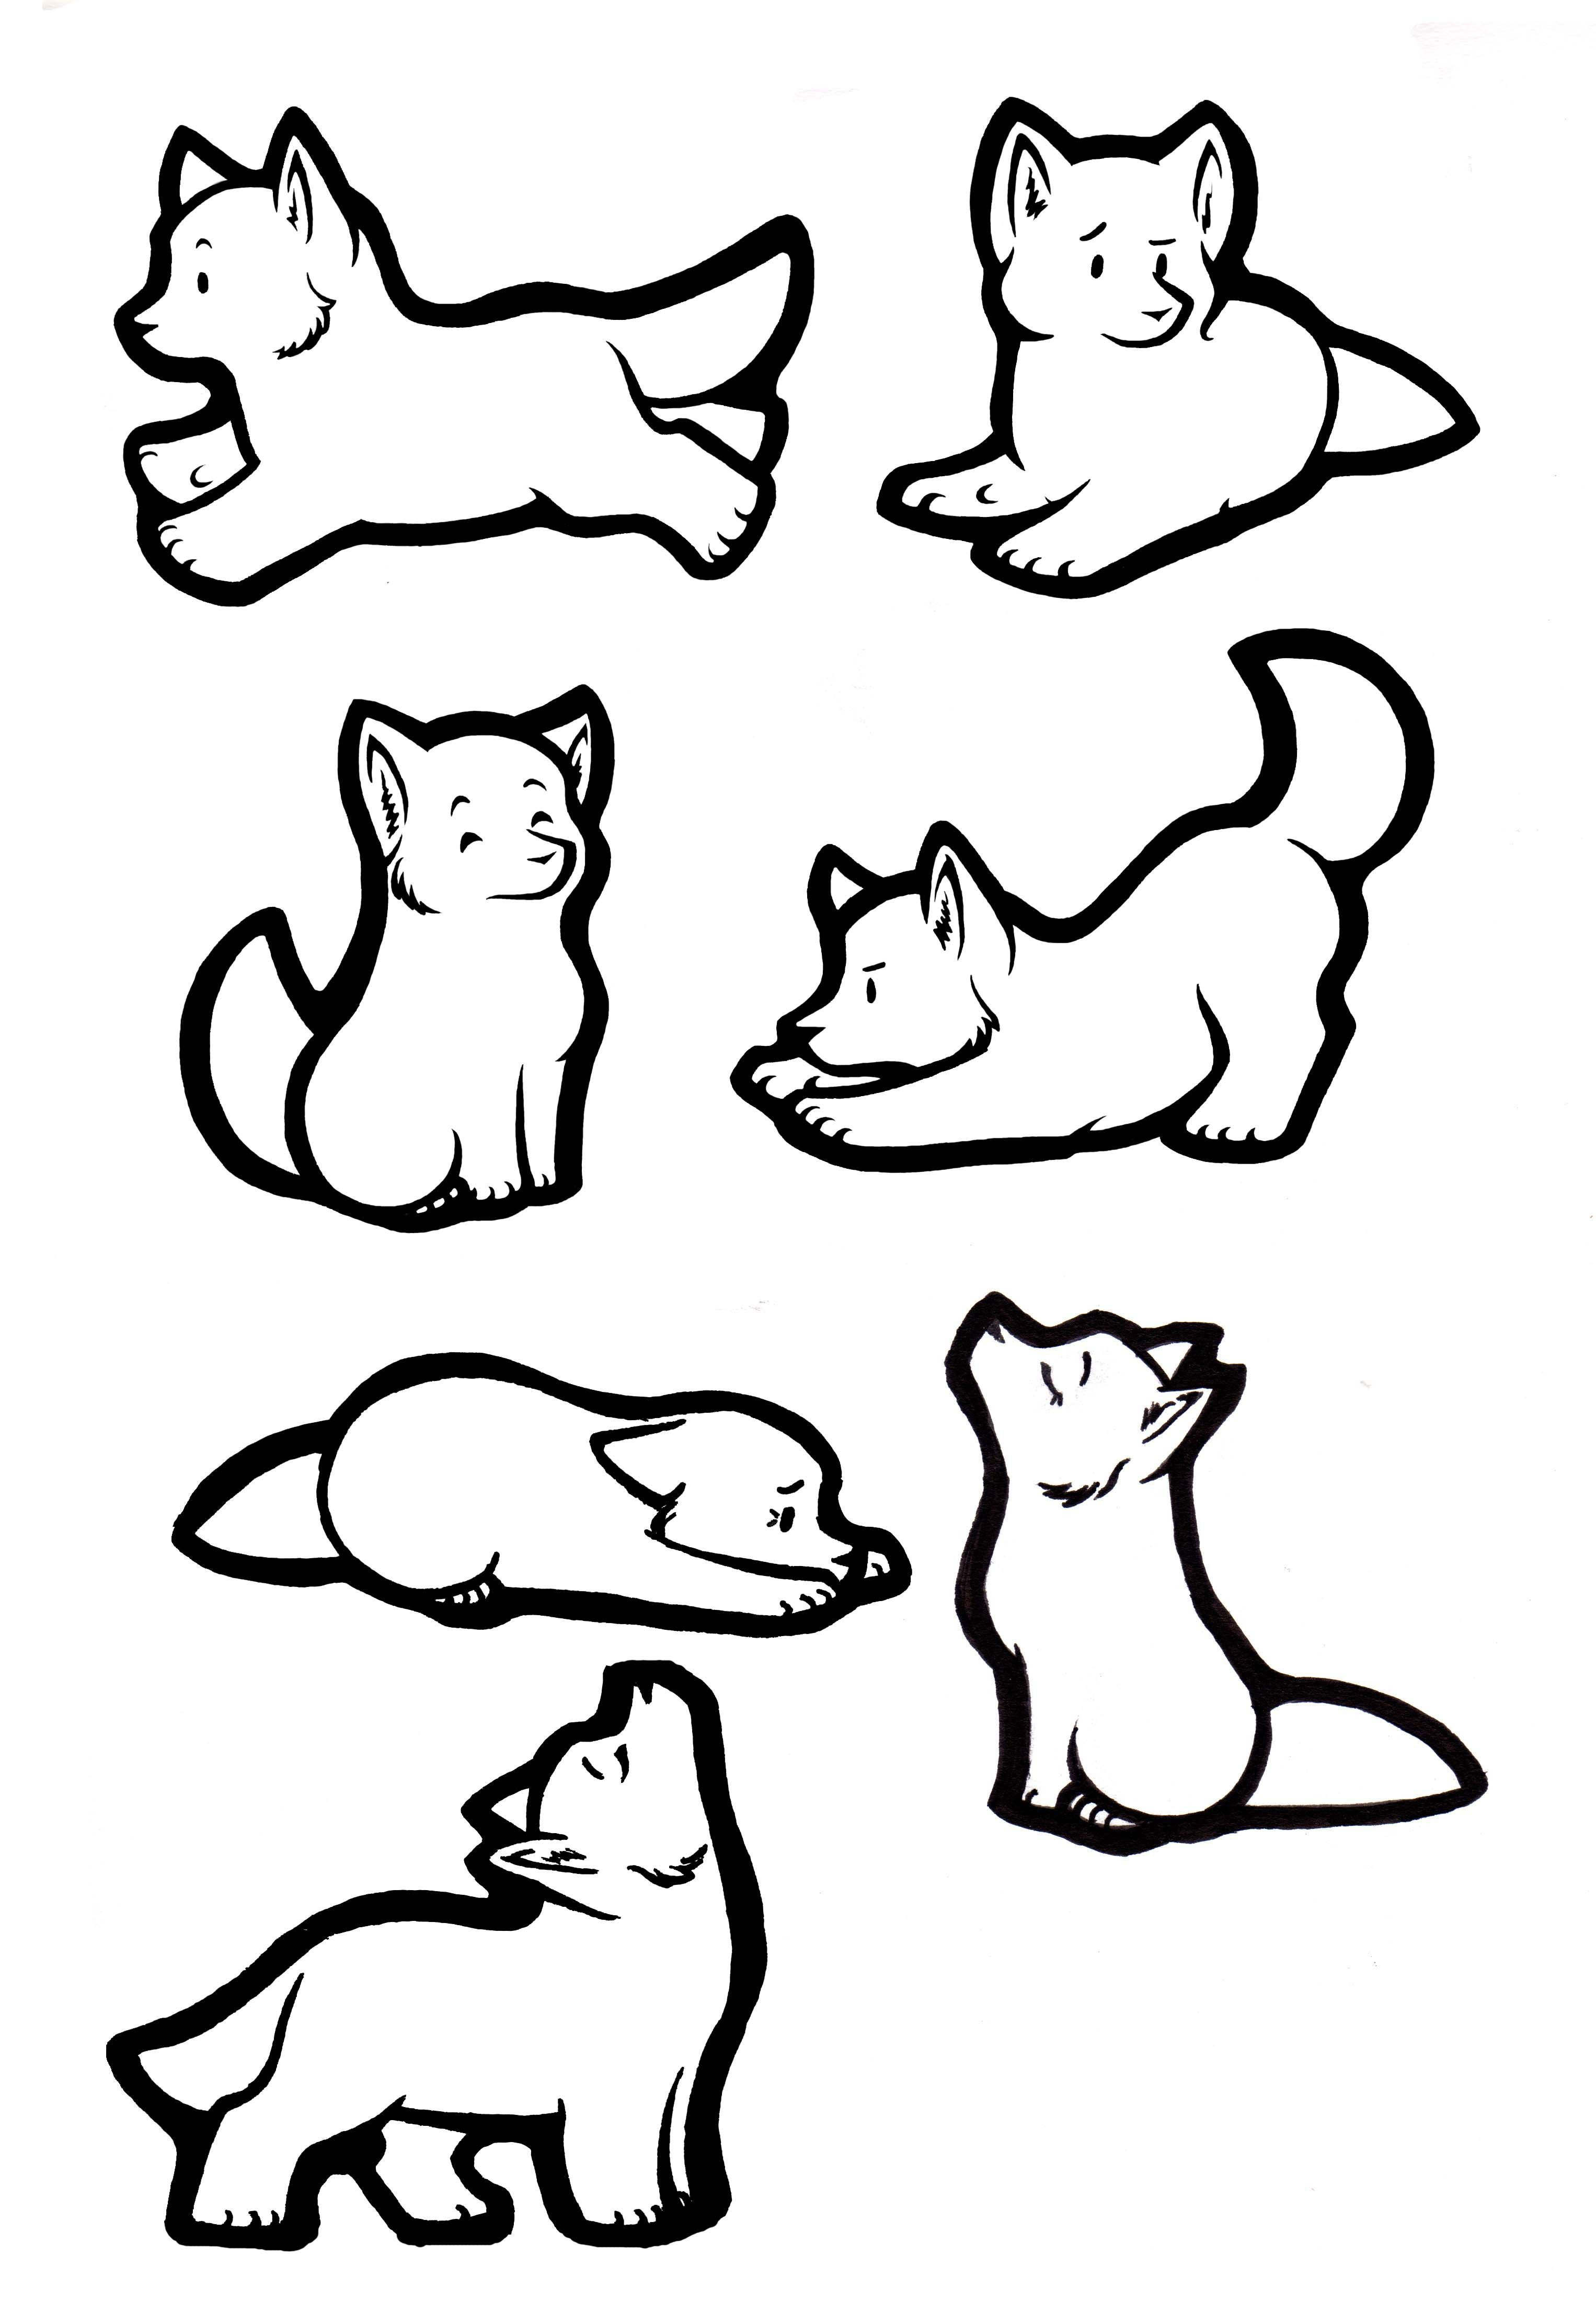 wolf drawing easy 1000 ideas about wolf drawing easy on pinterest anime wolf drawing easy wolf